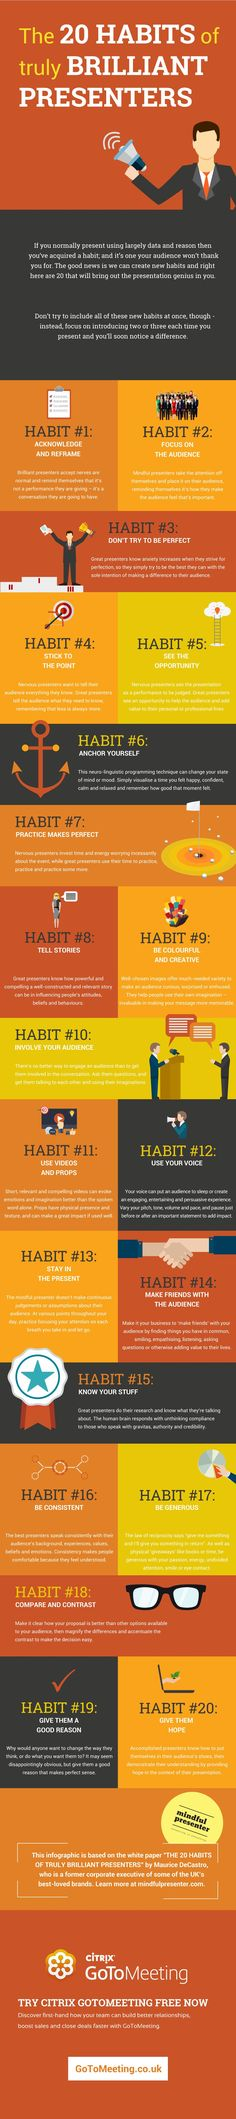 20 Habits οf Truly Brilliant Presenters Infographic - e-Learning Infographics - - The infographic presents 20 habits of truly brilliant presenters and tips for nurturing these habits in your own presentations. E Learning, Blended Learning, Career Development, Professional Development, Neuer Job, Presentation Skills, Effective Presentation, Public Speaking, Marketing